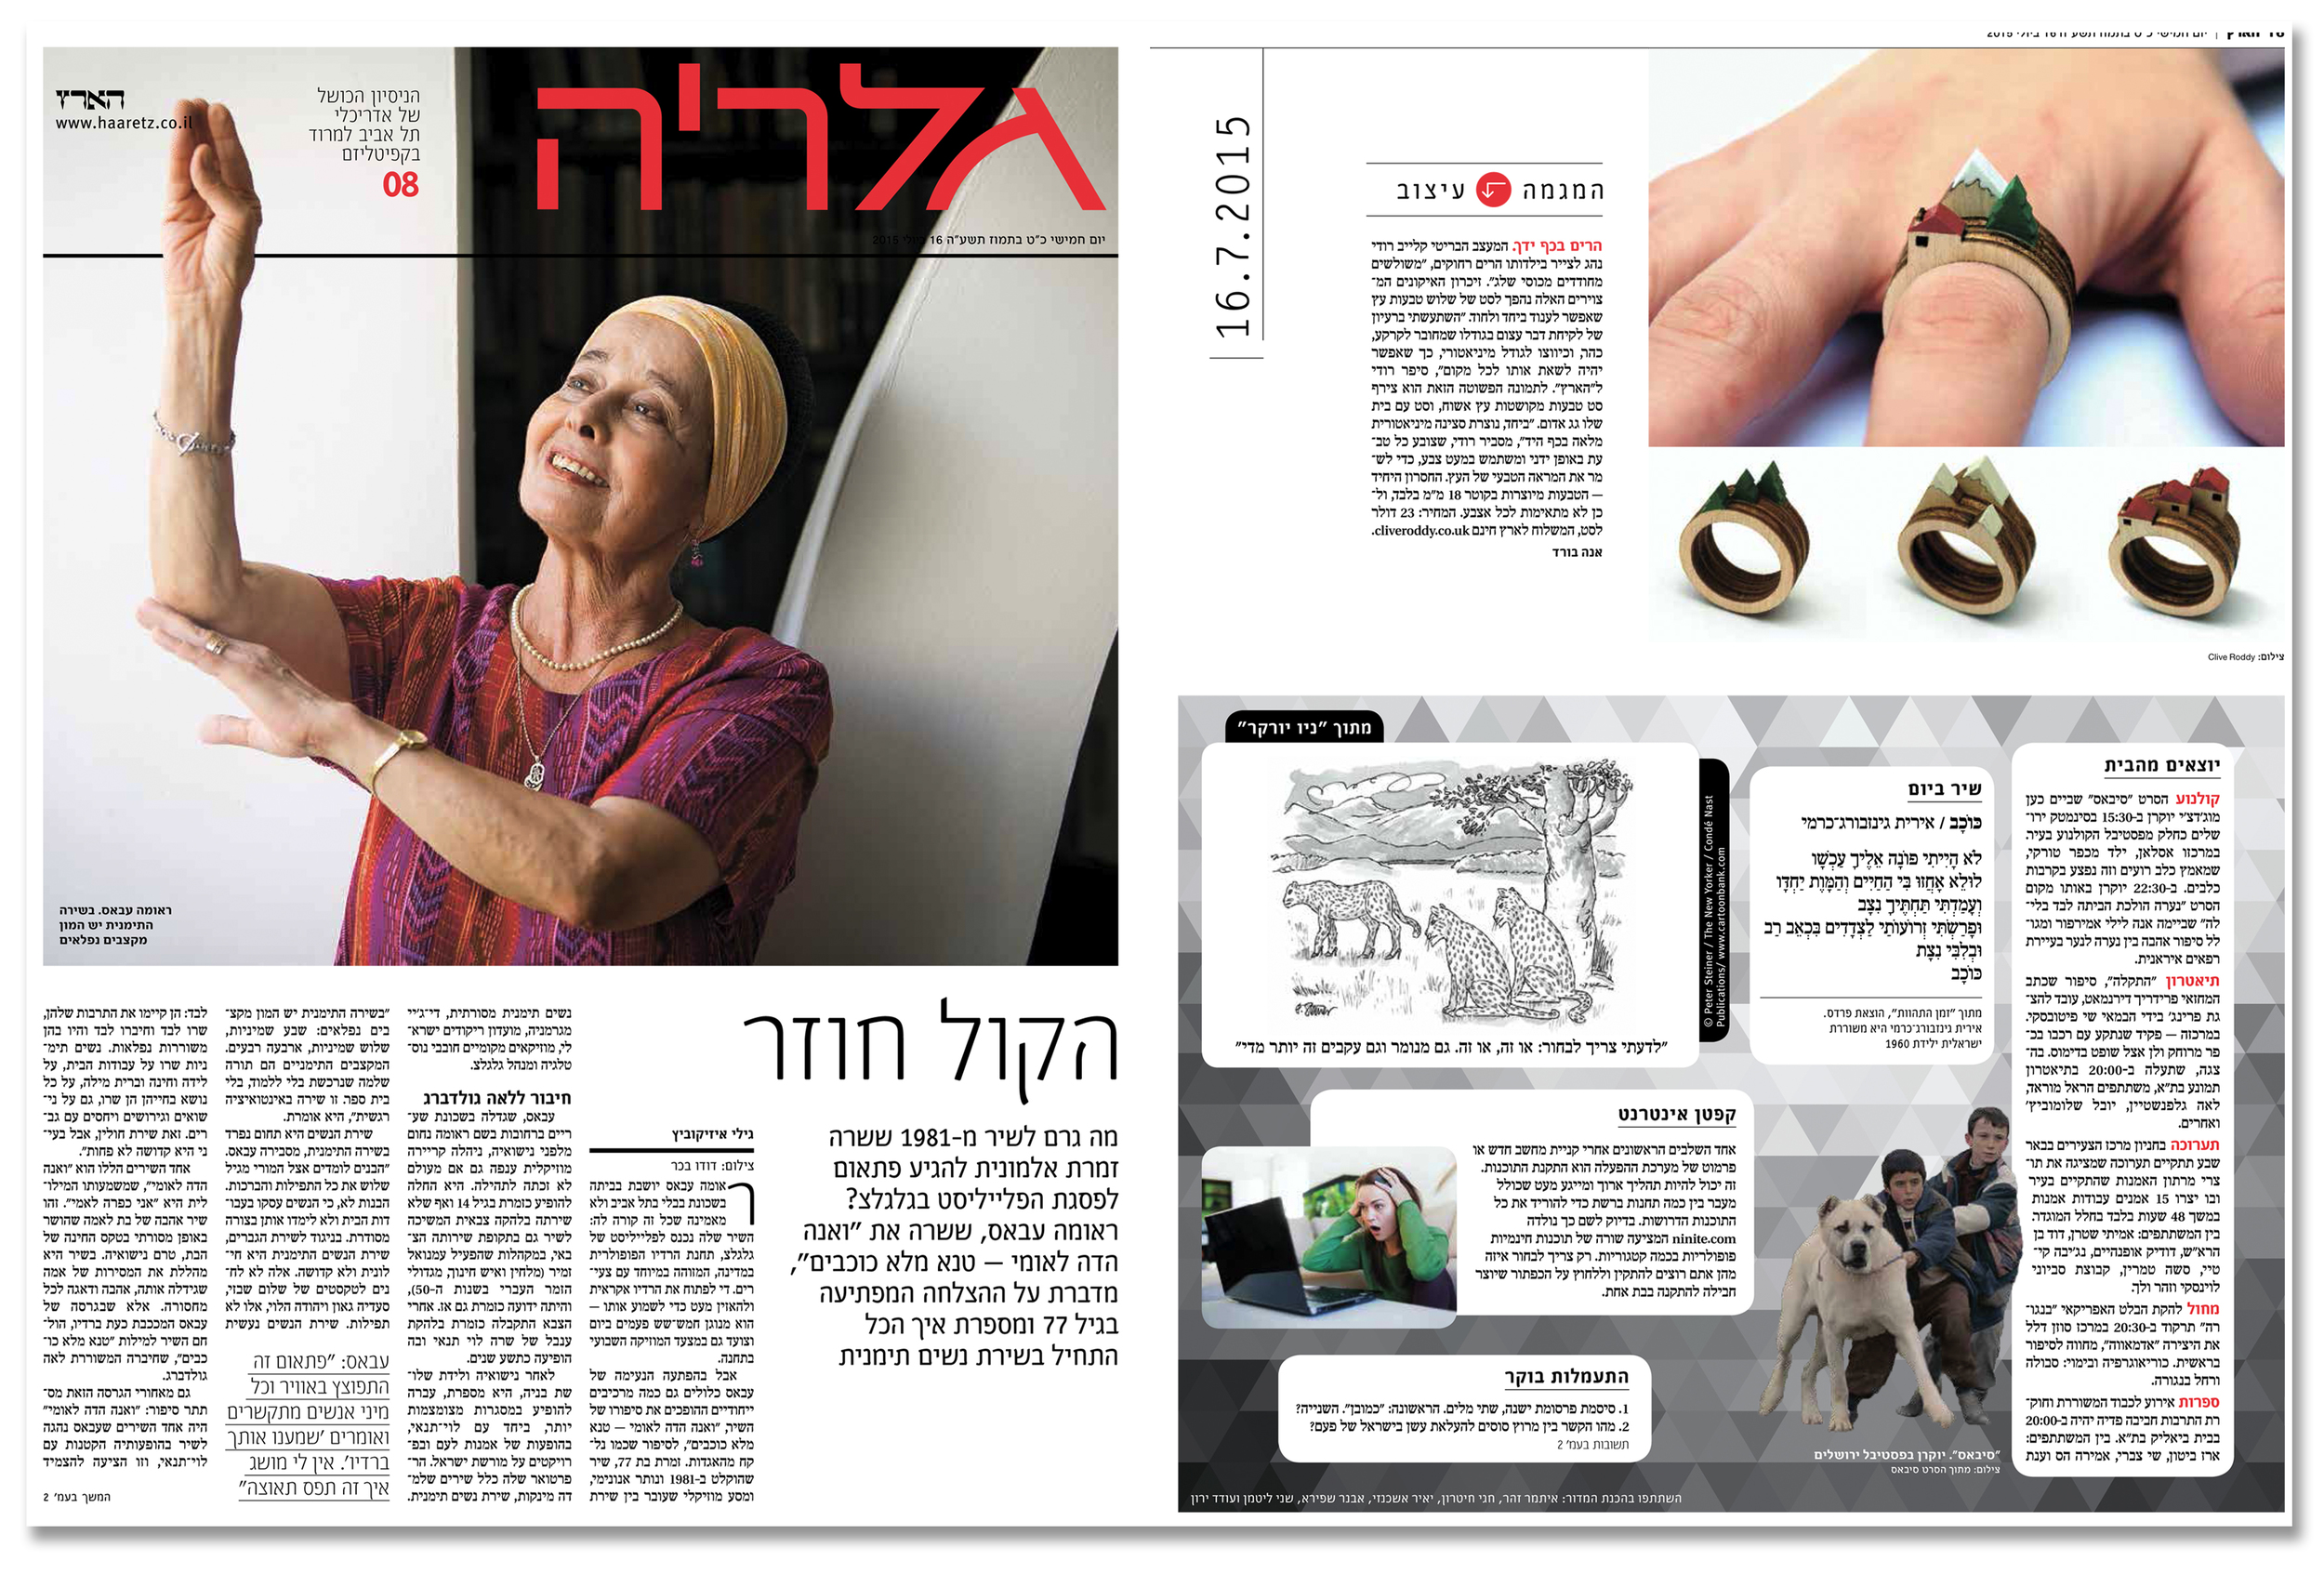 'Landscape Rings' featured in I  sraeli newspaper   Haaretz. Published in July 2015. Israel.